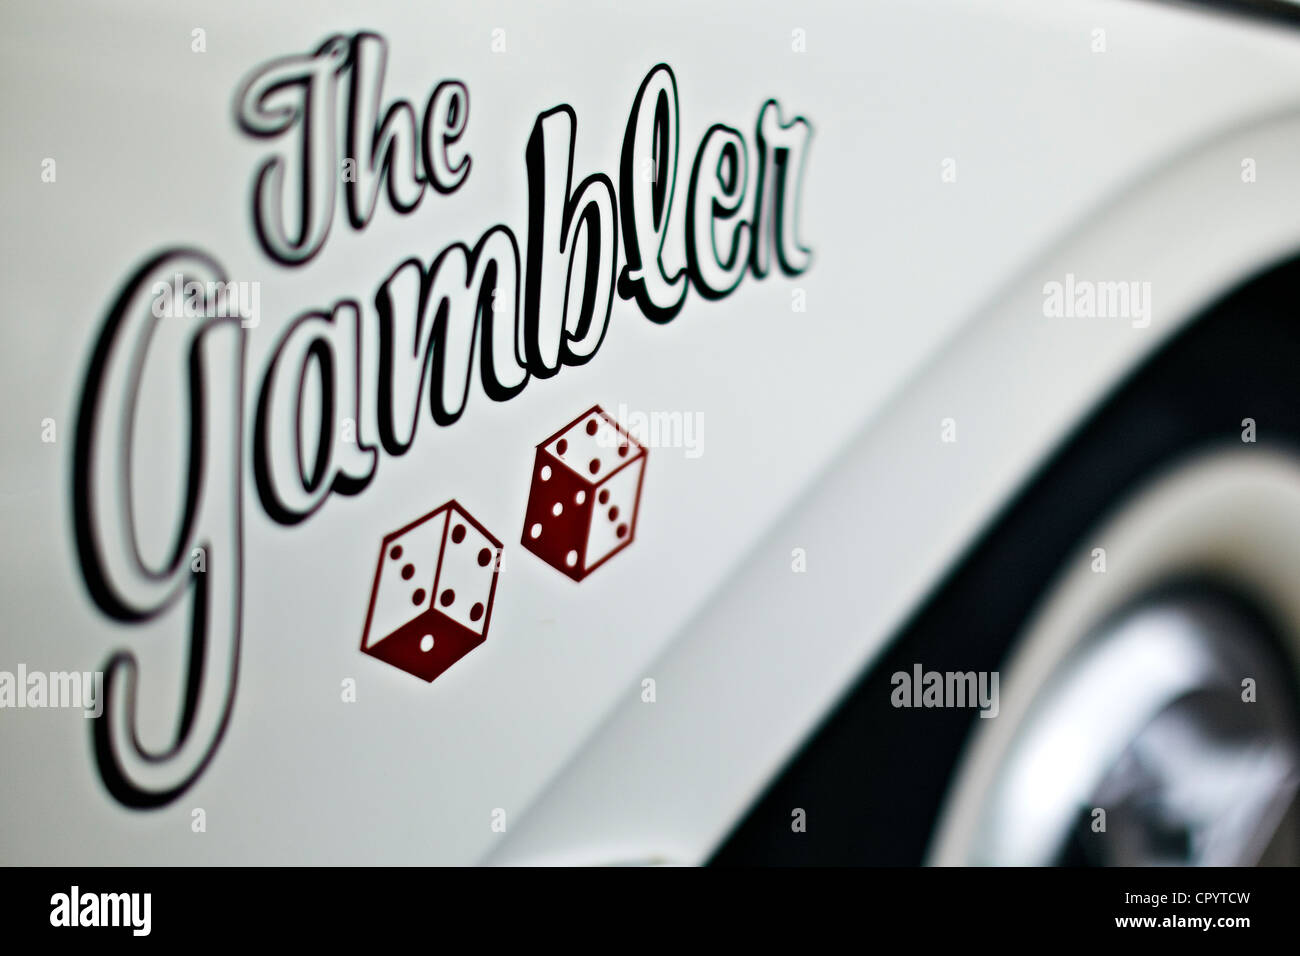 The Gambler, logo, vintage car, USA - Stock Image